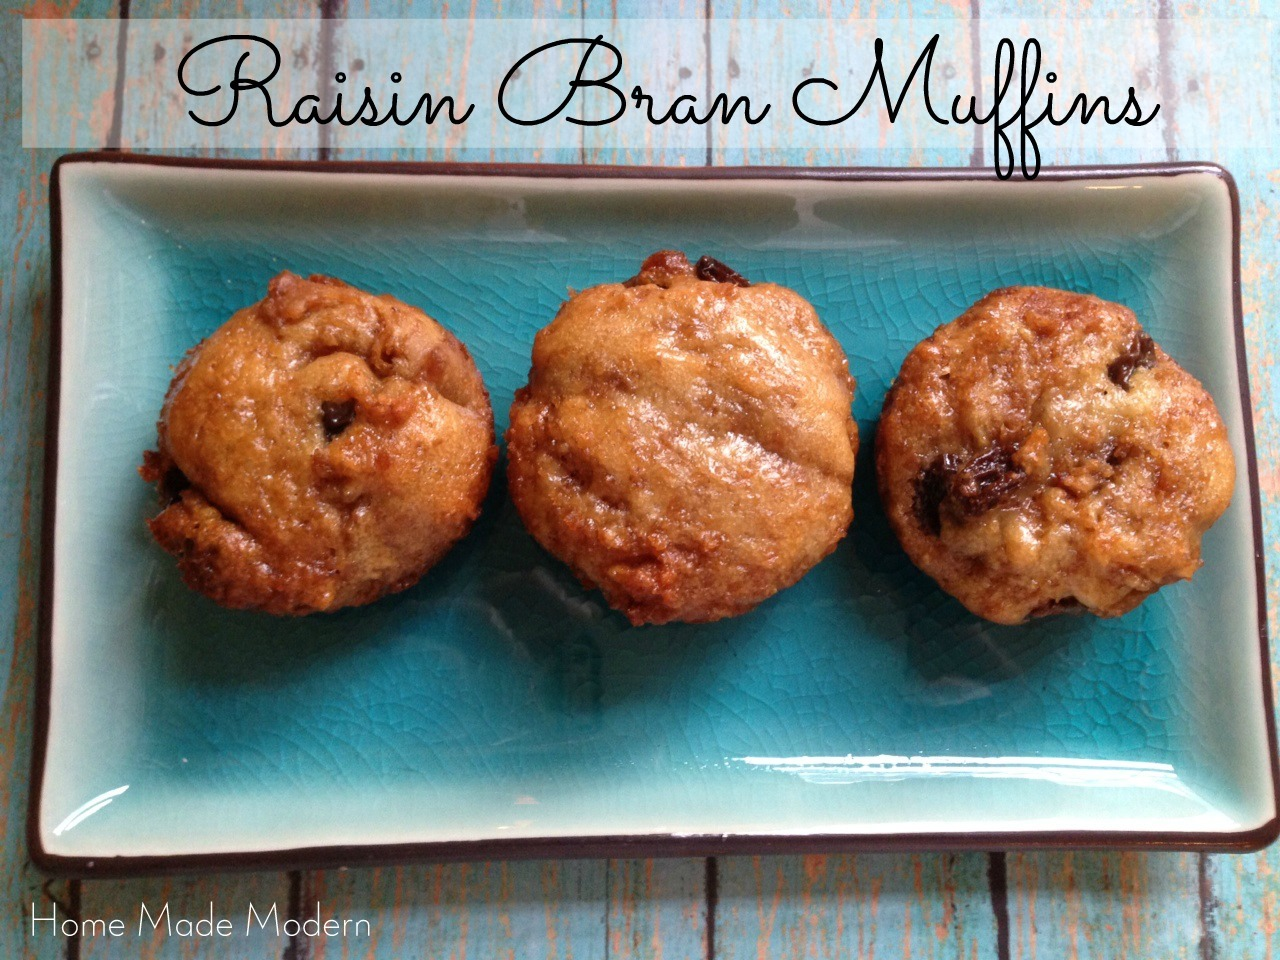 Home Made Modern: Recipe of the Week: Six Week Raisin Bran Muffins